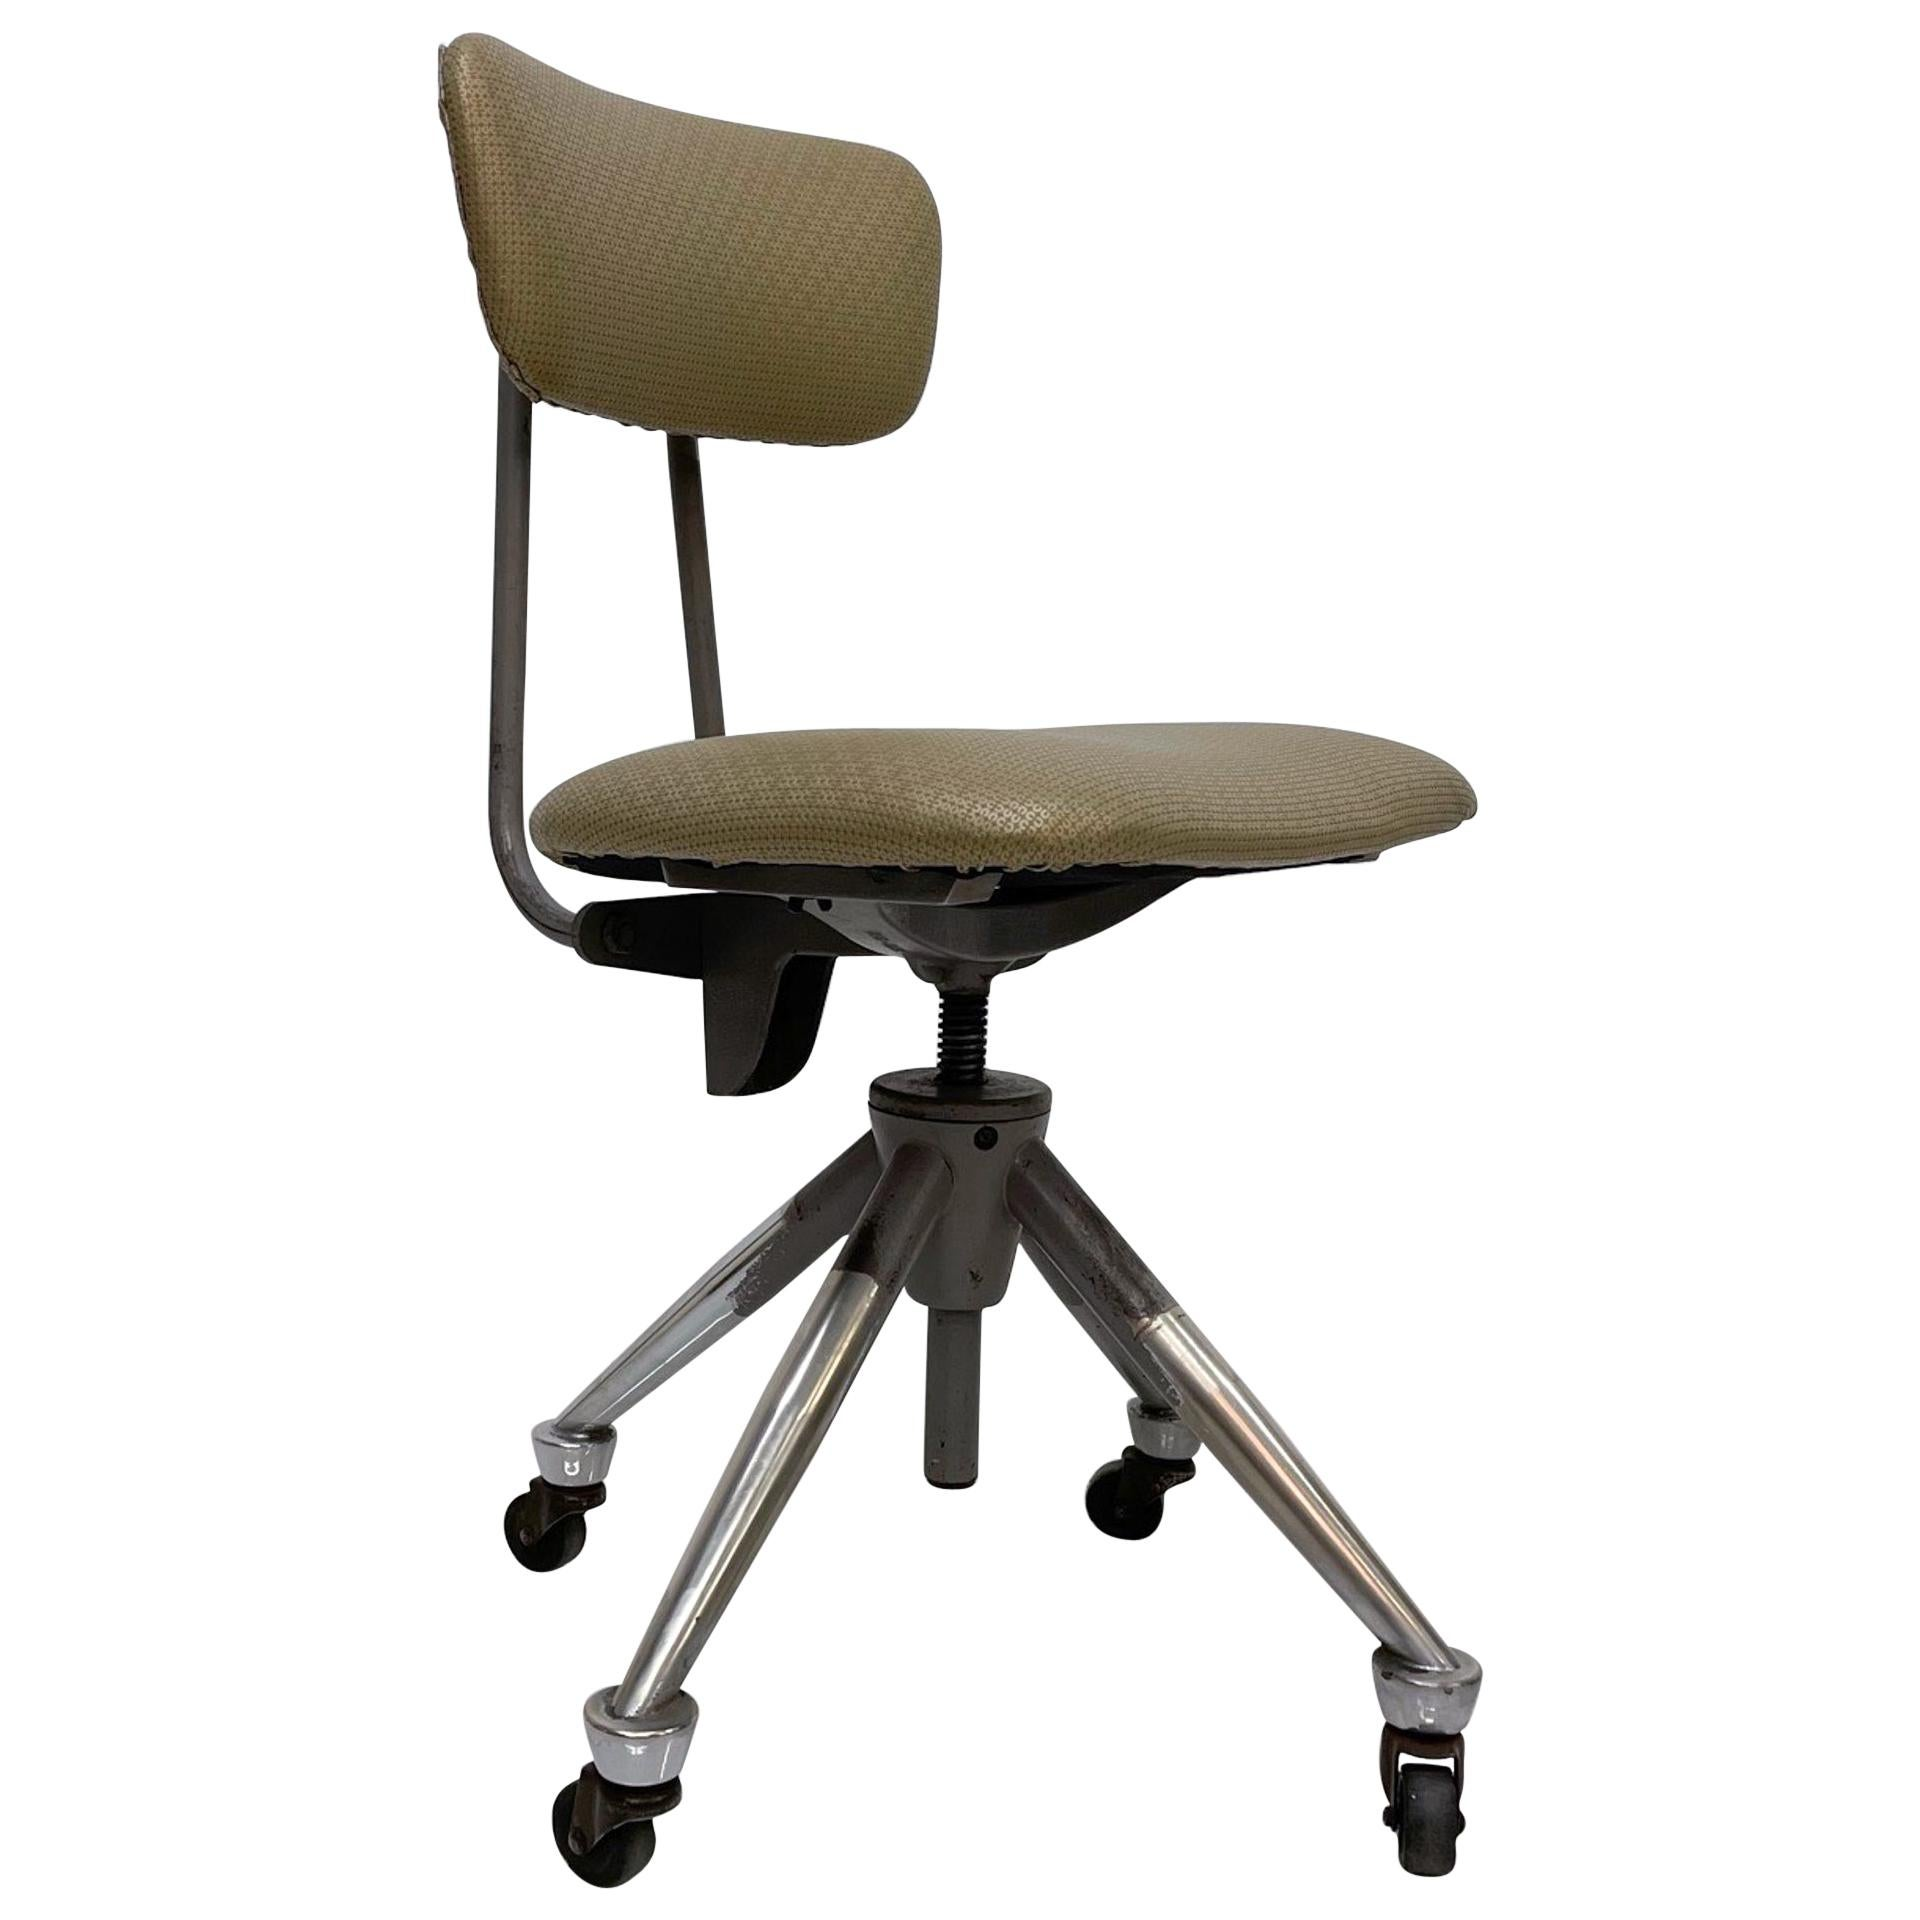 Do More Office Chair Mid-Century Modern Industrial, USA